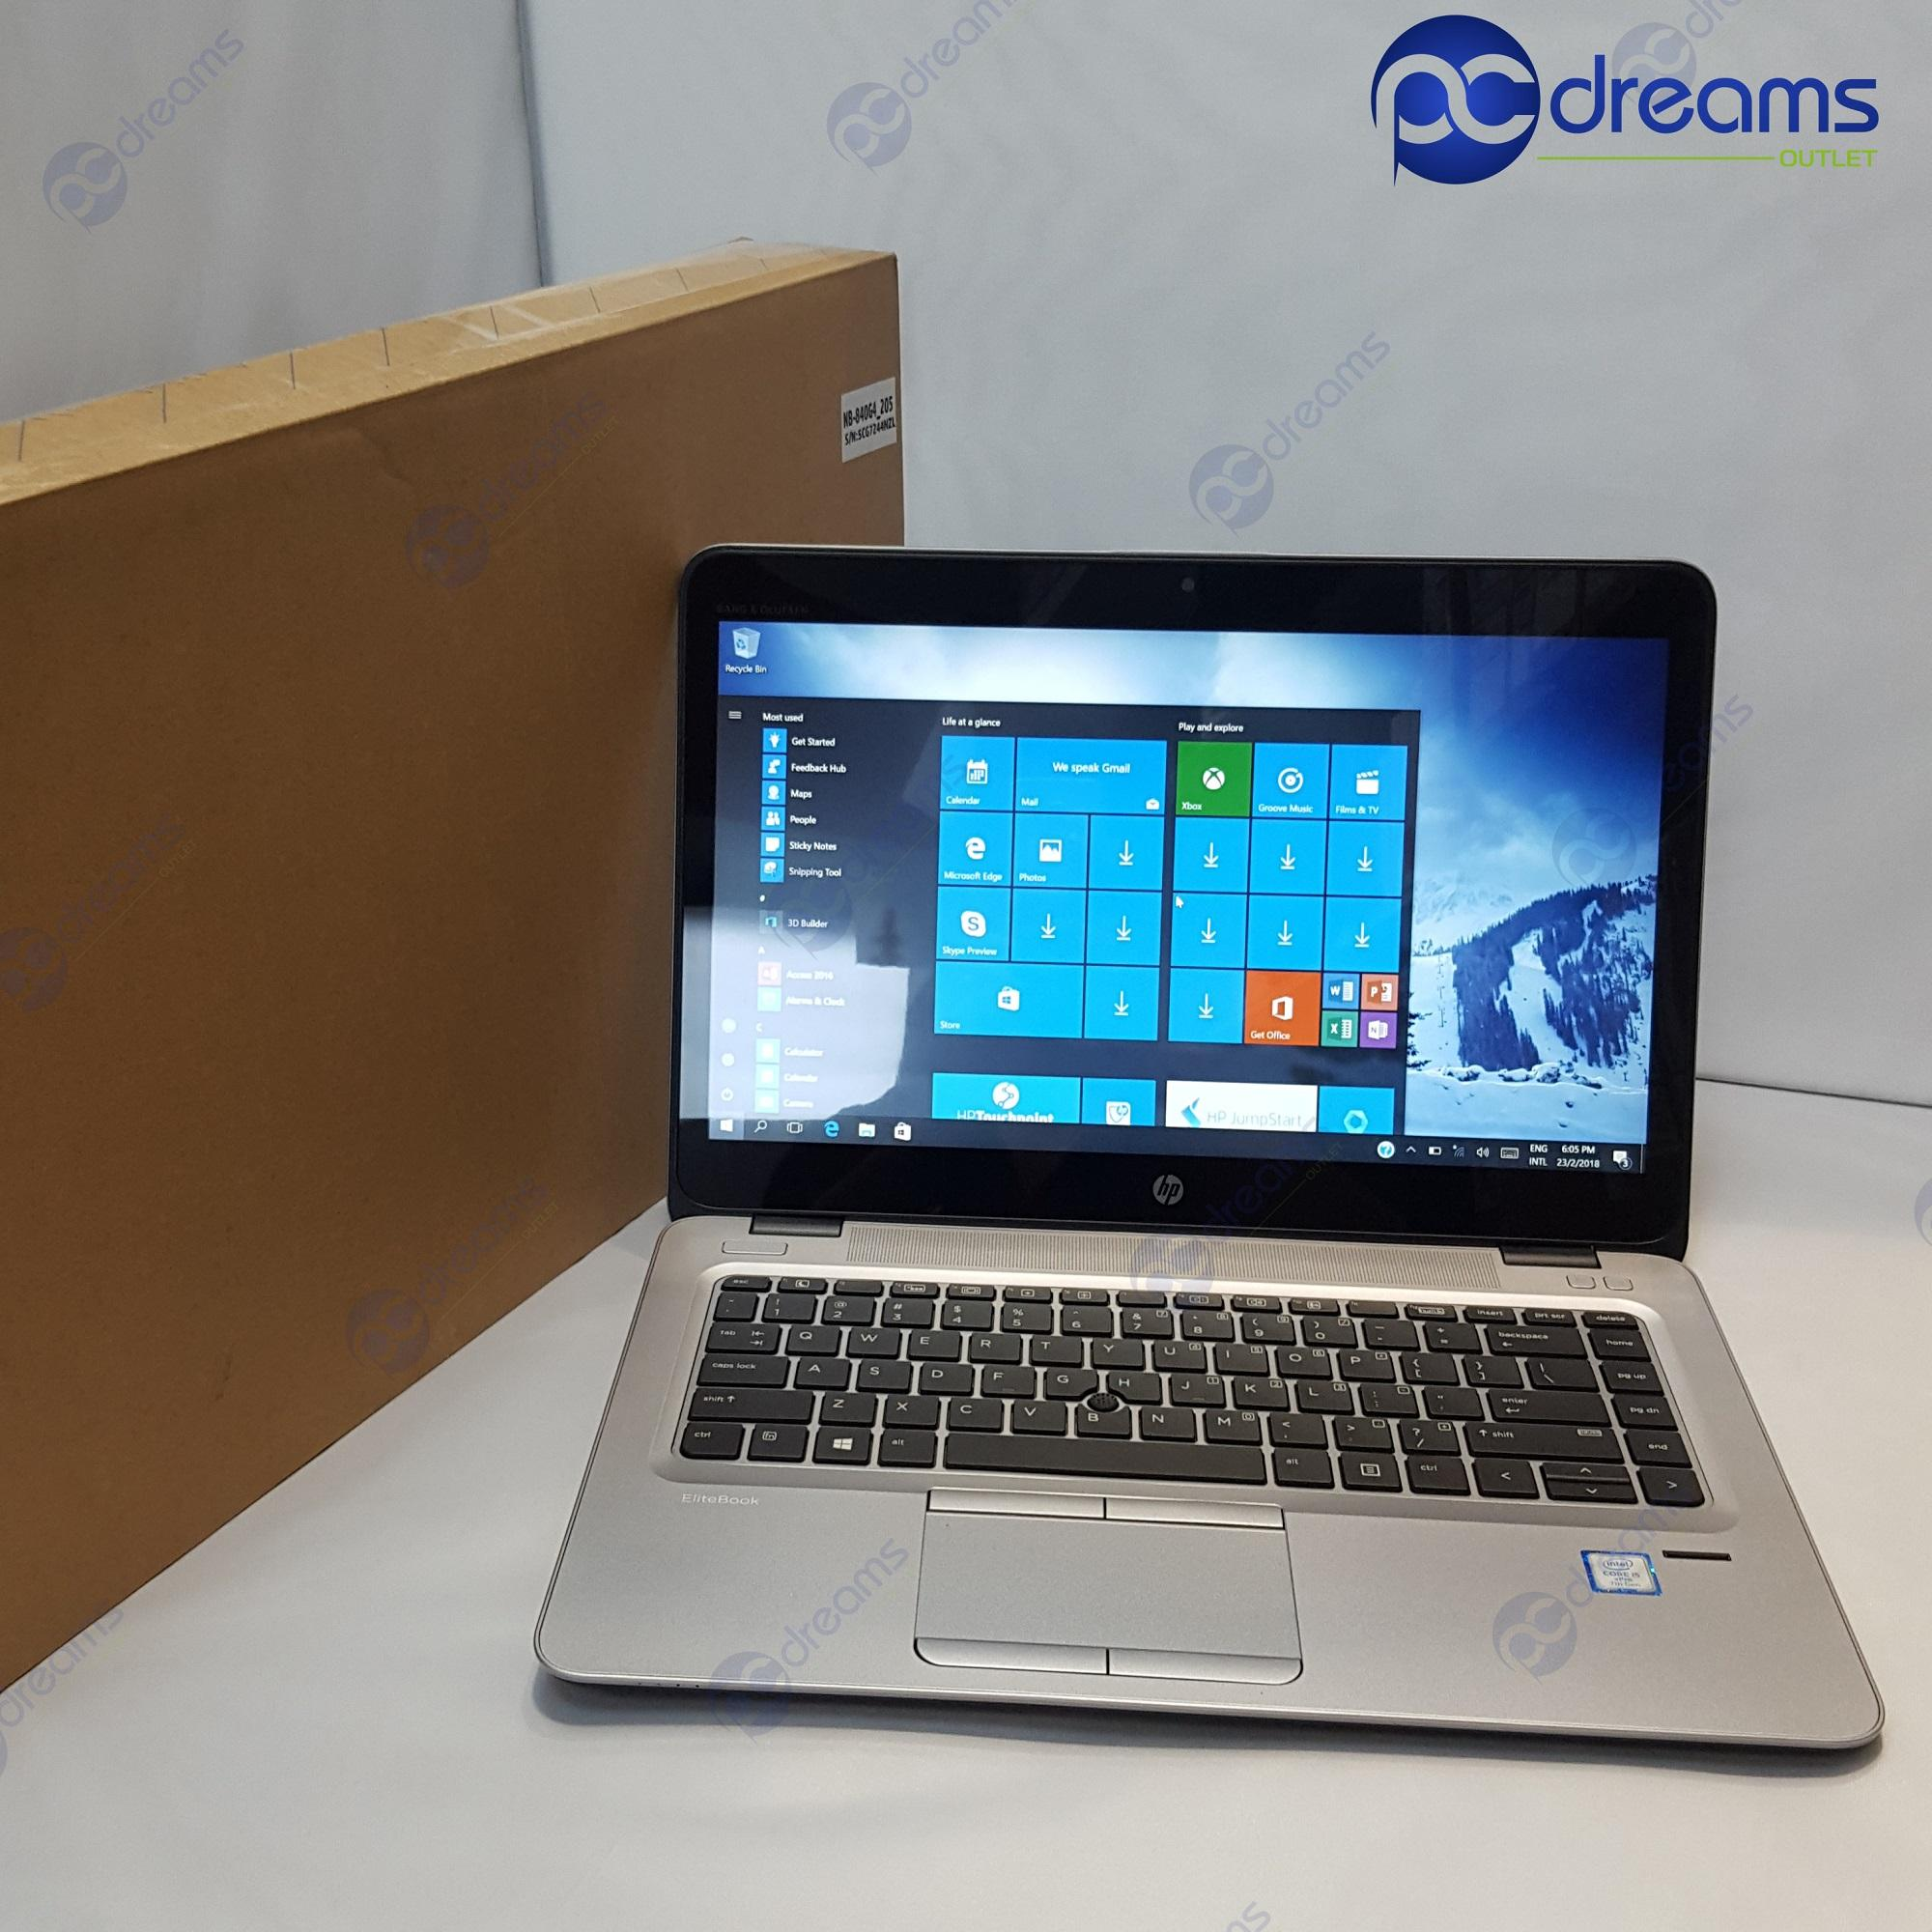 BEST LOBANG! HP ELITEBOOK 840 G3 (L3C65AV) i5-6300U/16GB/256GB PCIe NVMe SSD [Premium Refreshed]